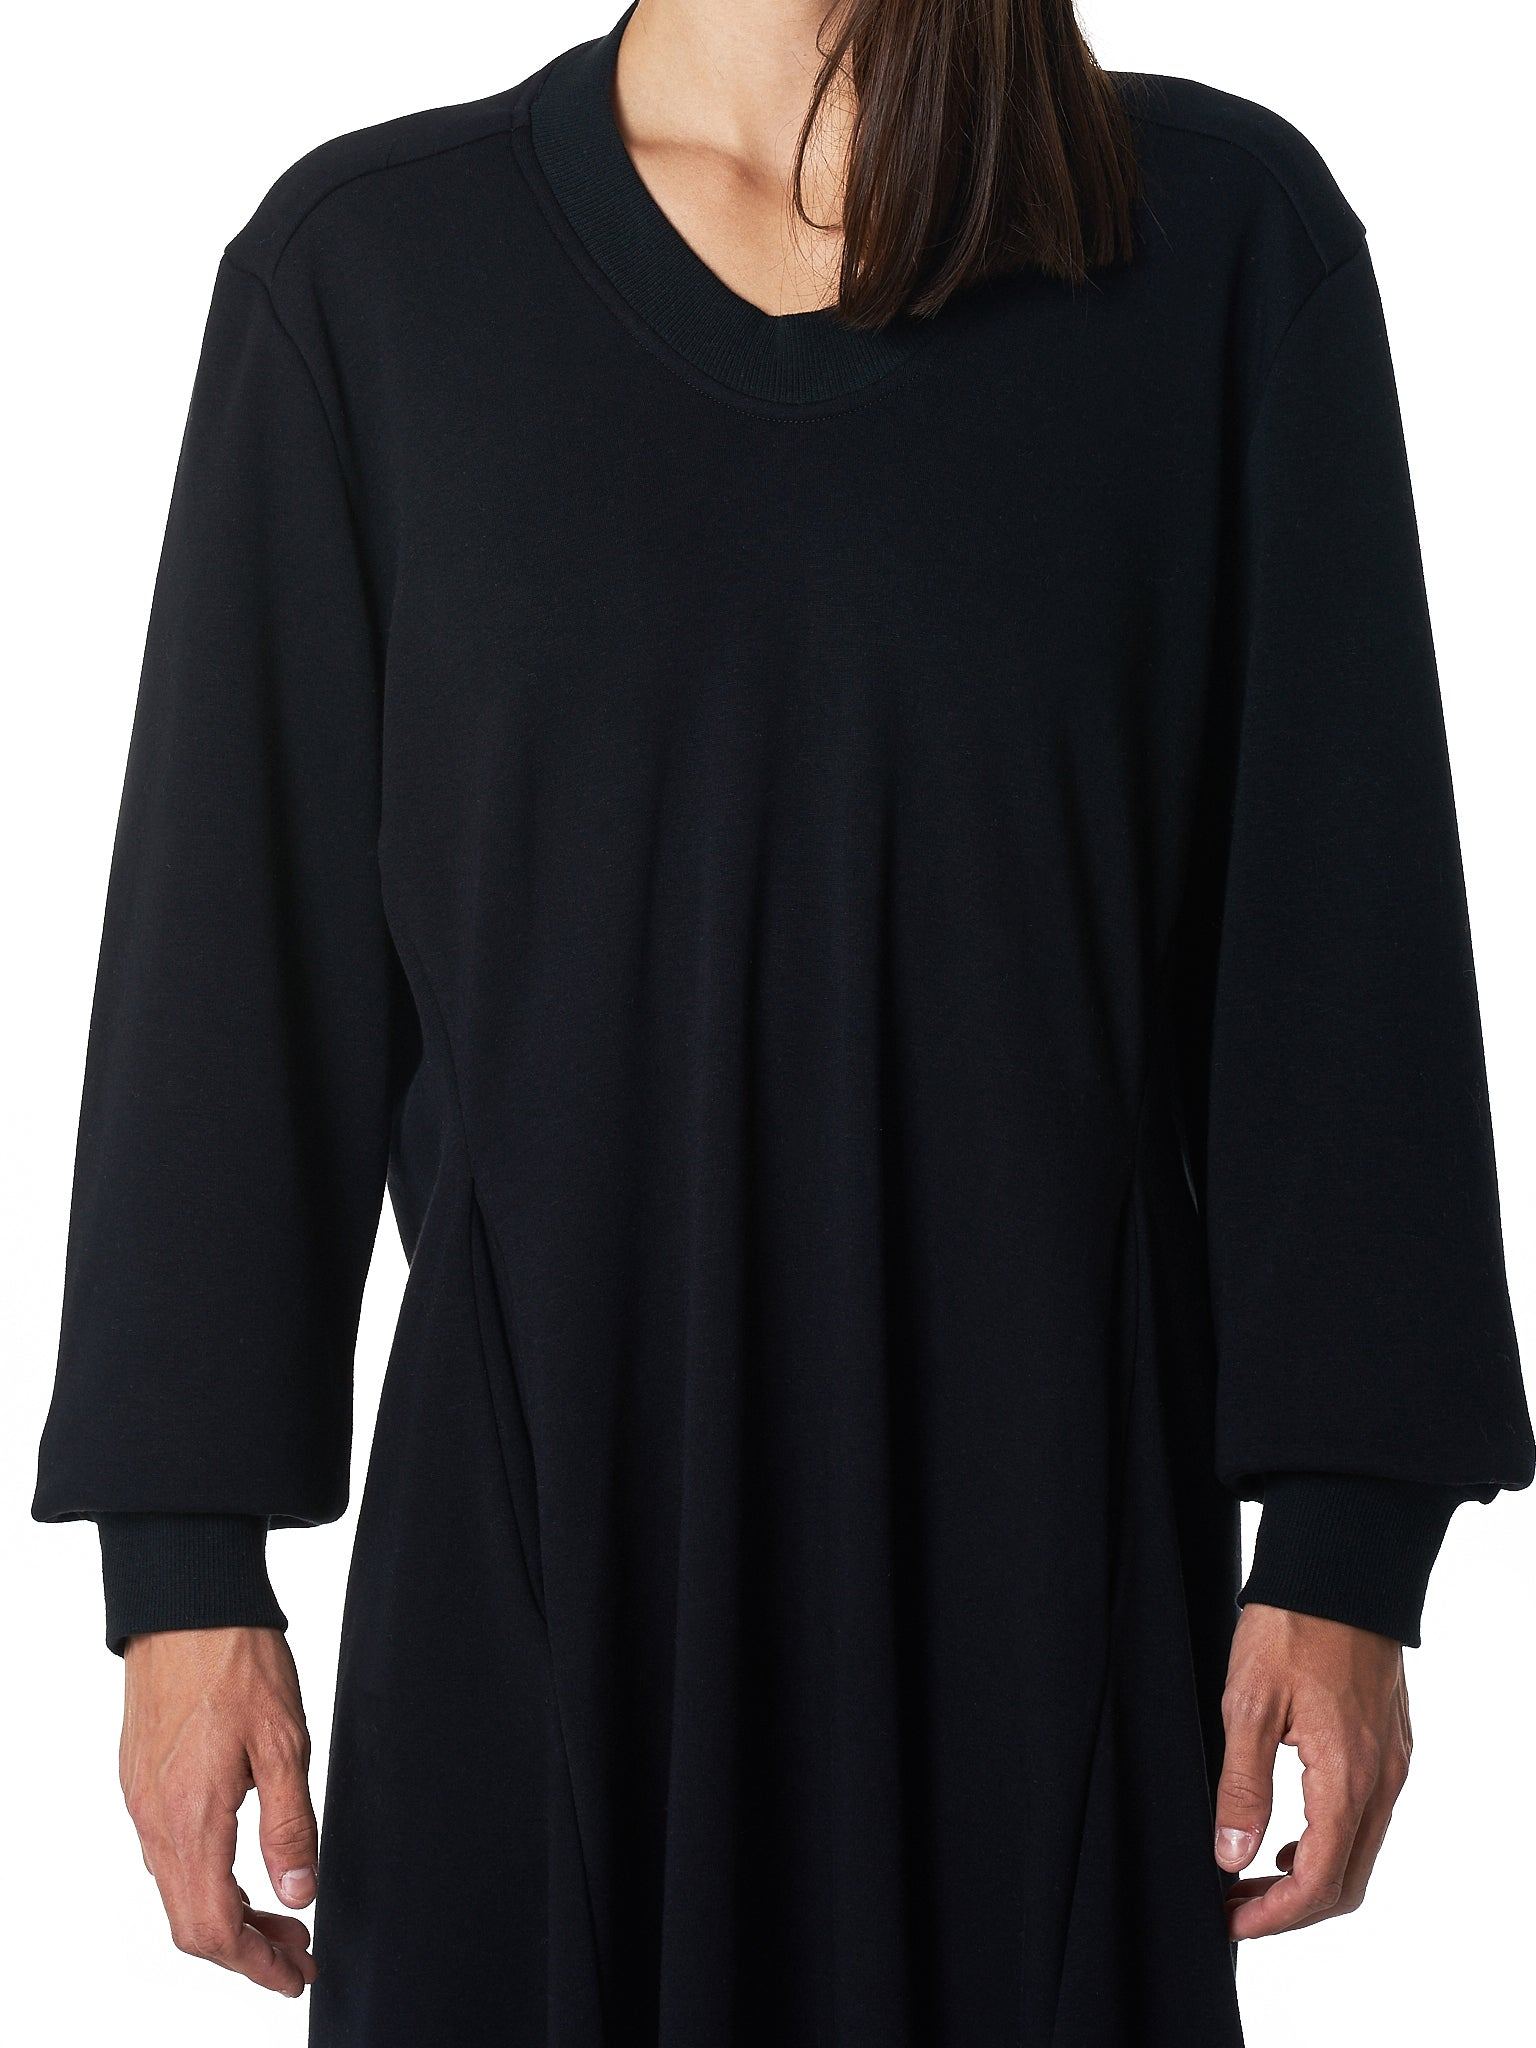 Pullover Dress (008-BLACK-TERRY)